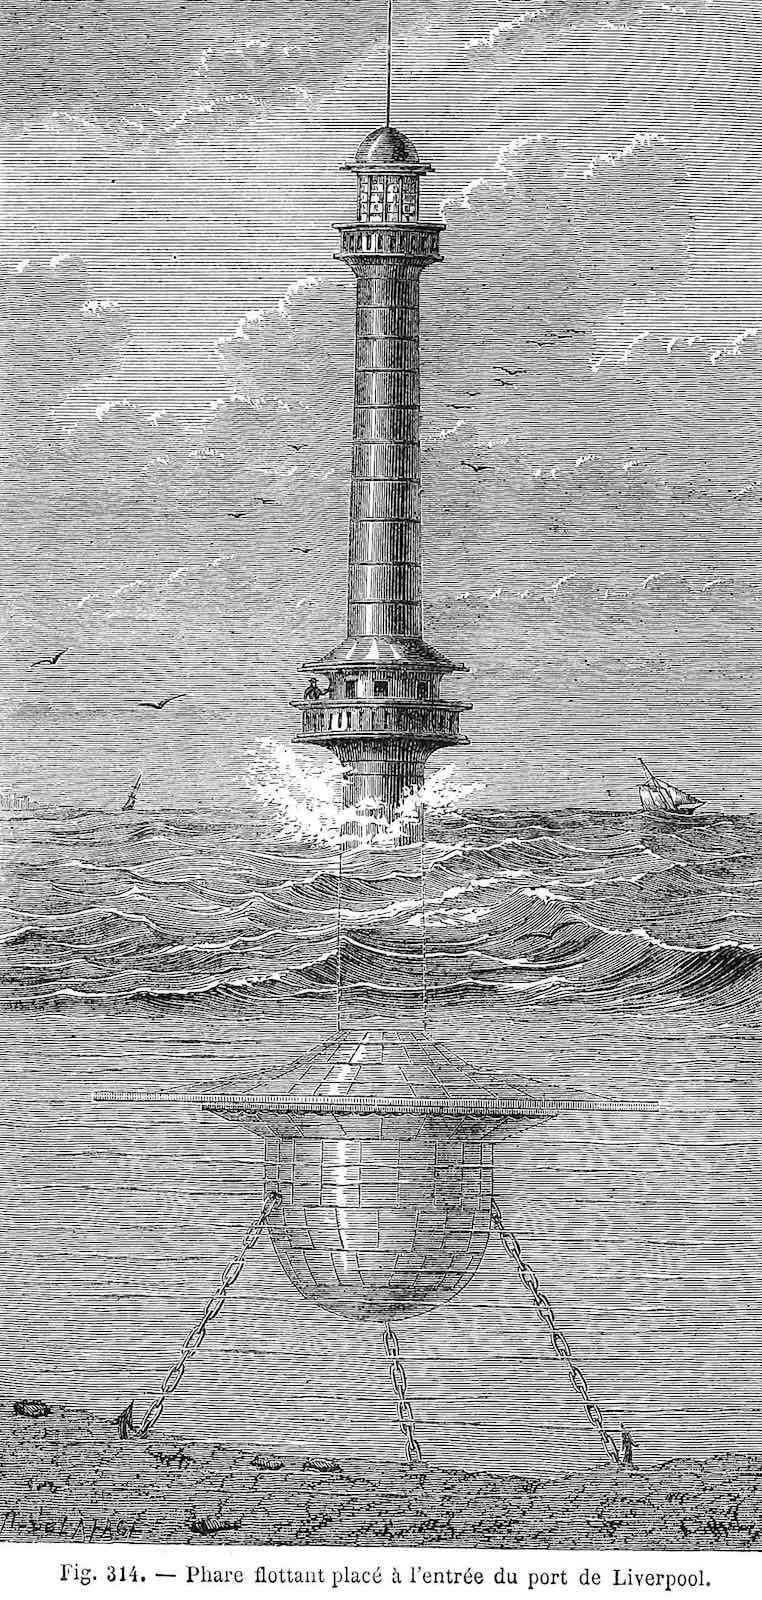 an 1867 lighthouse at Liverpool England, chained and floating